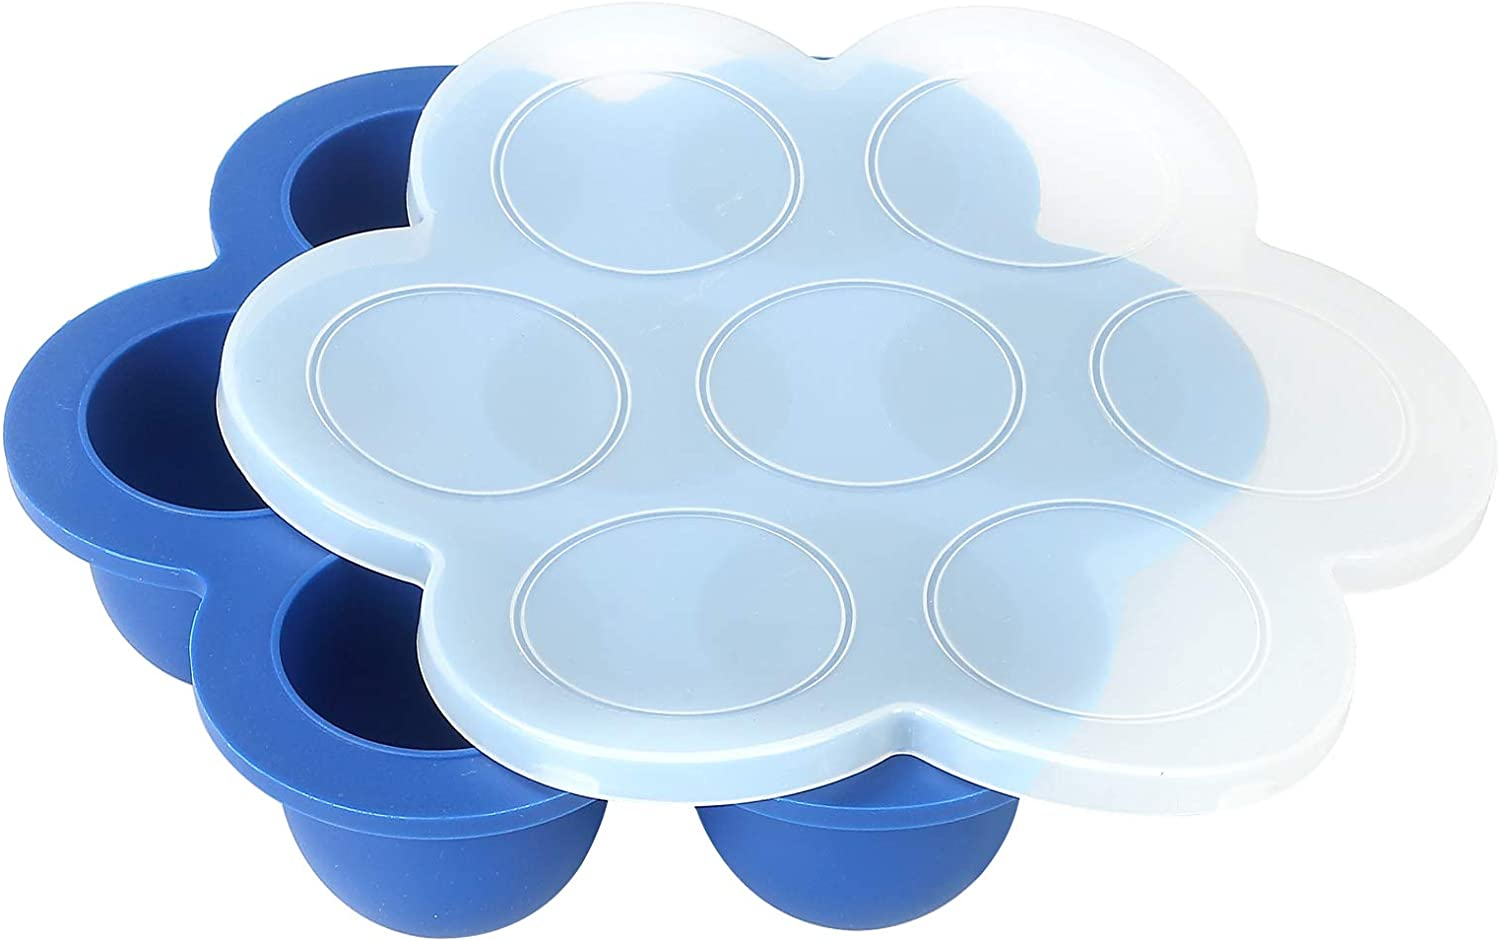 Egg Bites Mold for Instant Pot Accessories by ULEE - Fits Instant Pot 5,6,8 qt Pressure Cooker/Air Fryer and Ninjia Foodie 6.5, 8qt (Classic Blue)